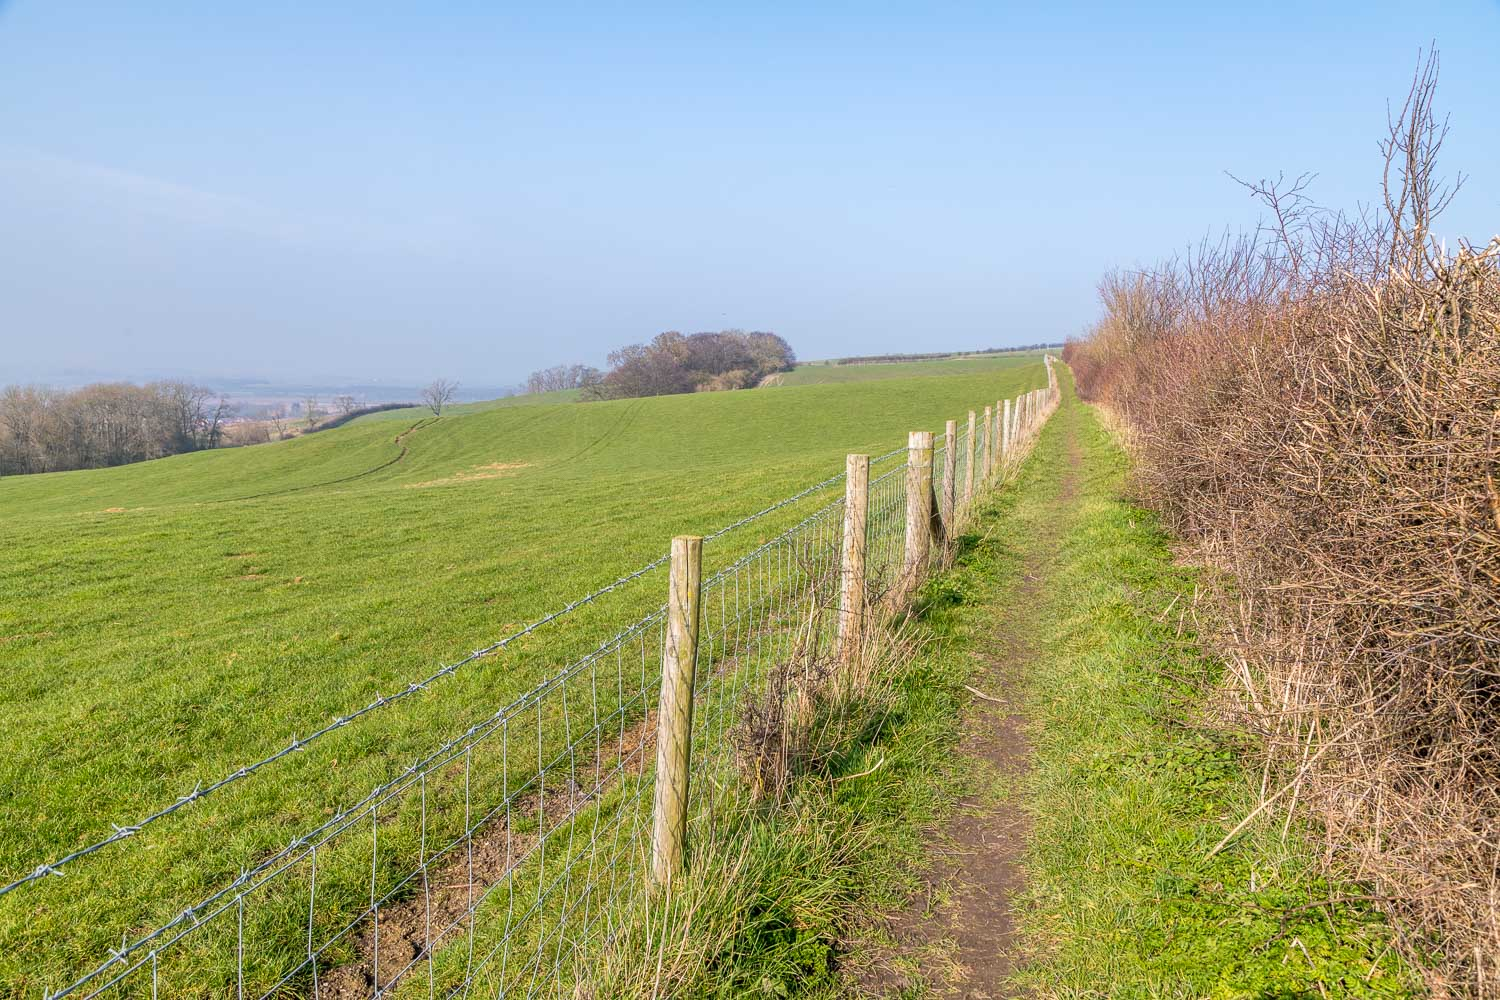 Chalkland Way, South Cliff